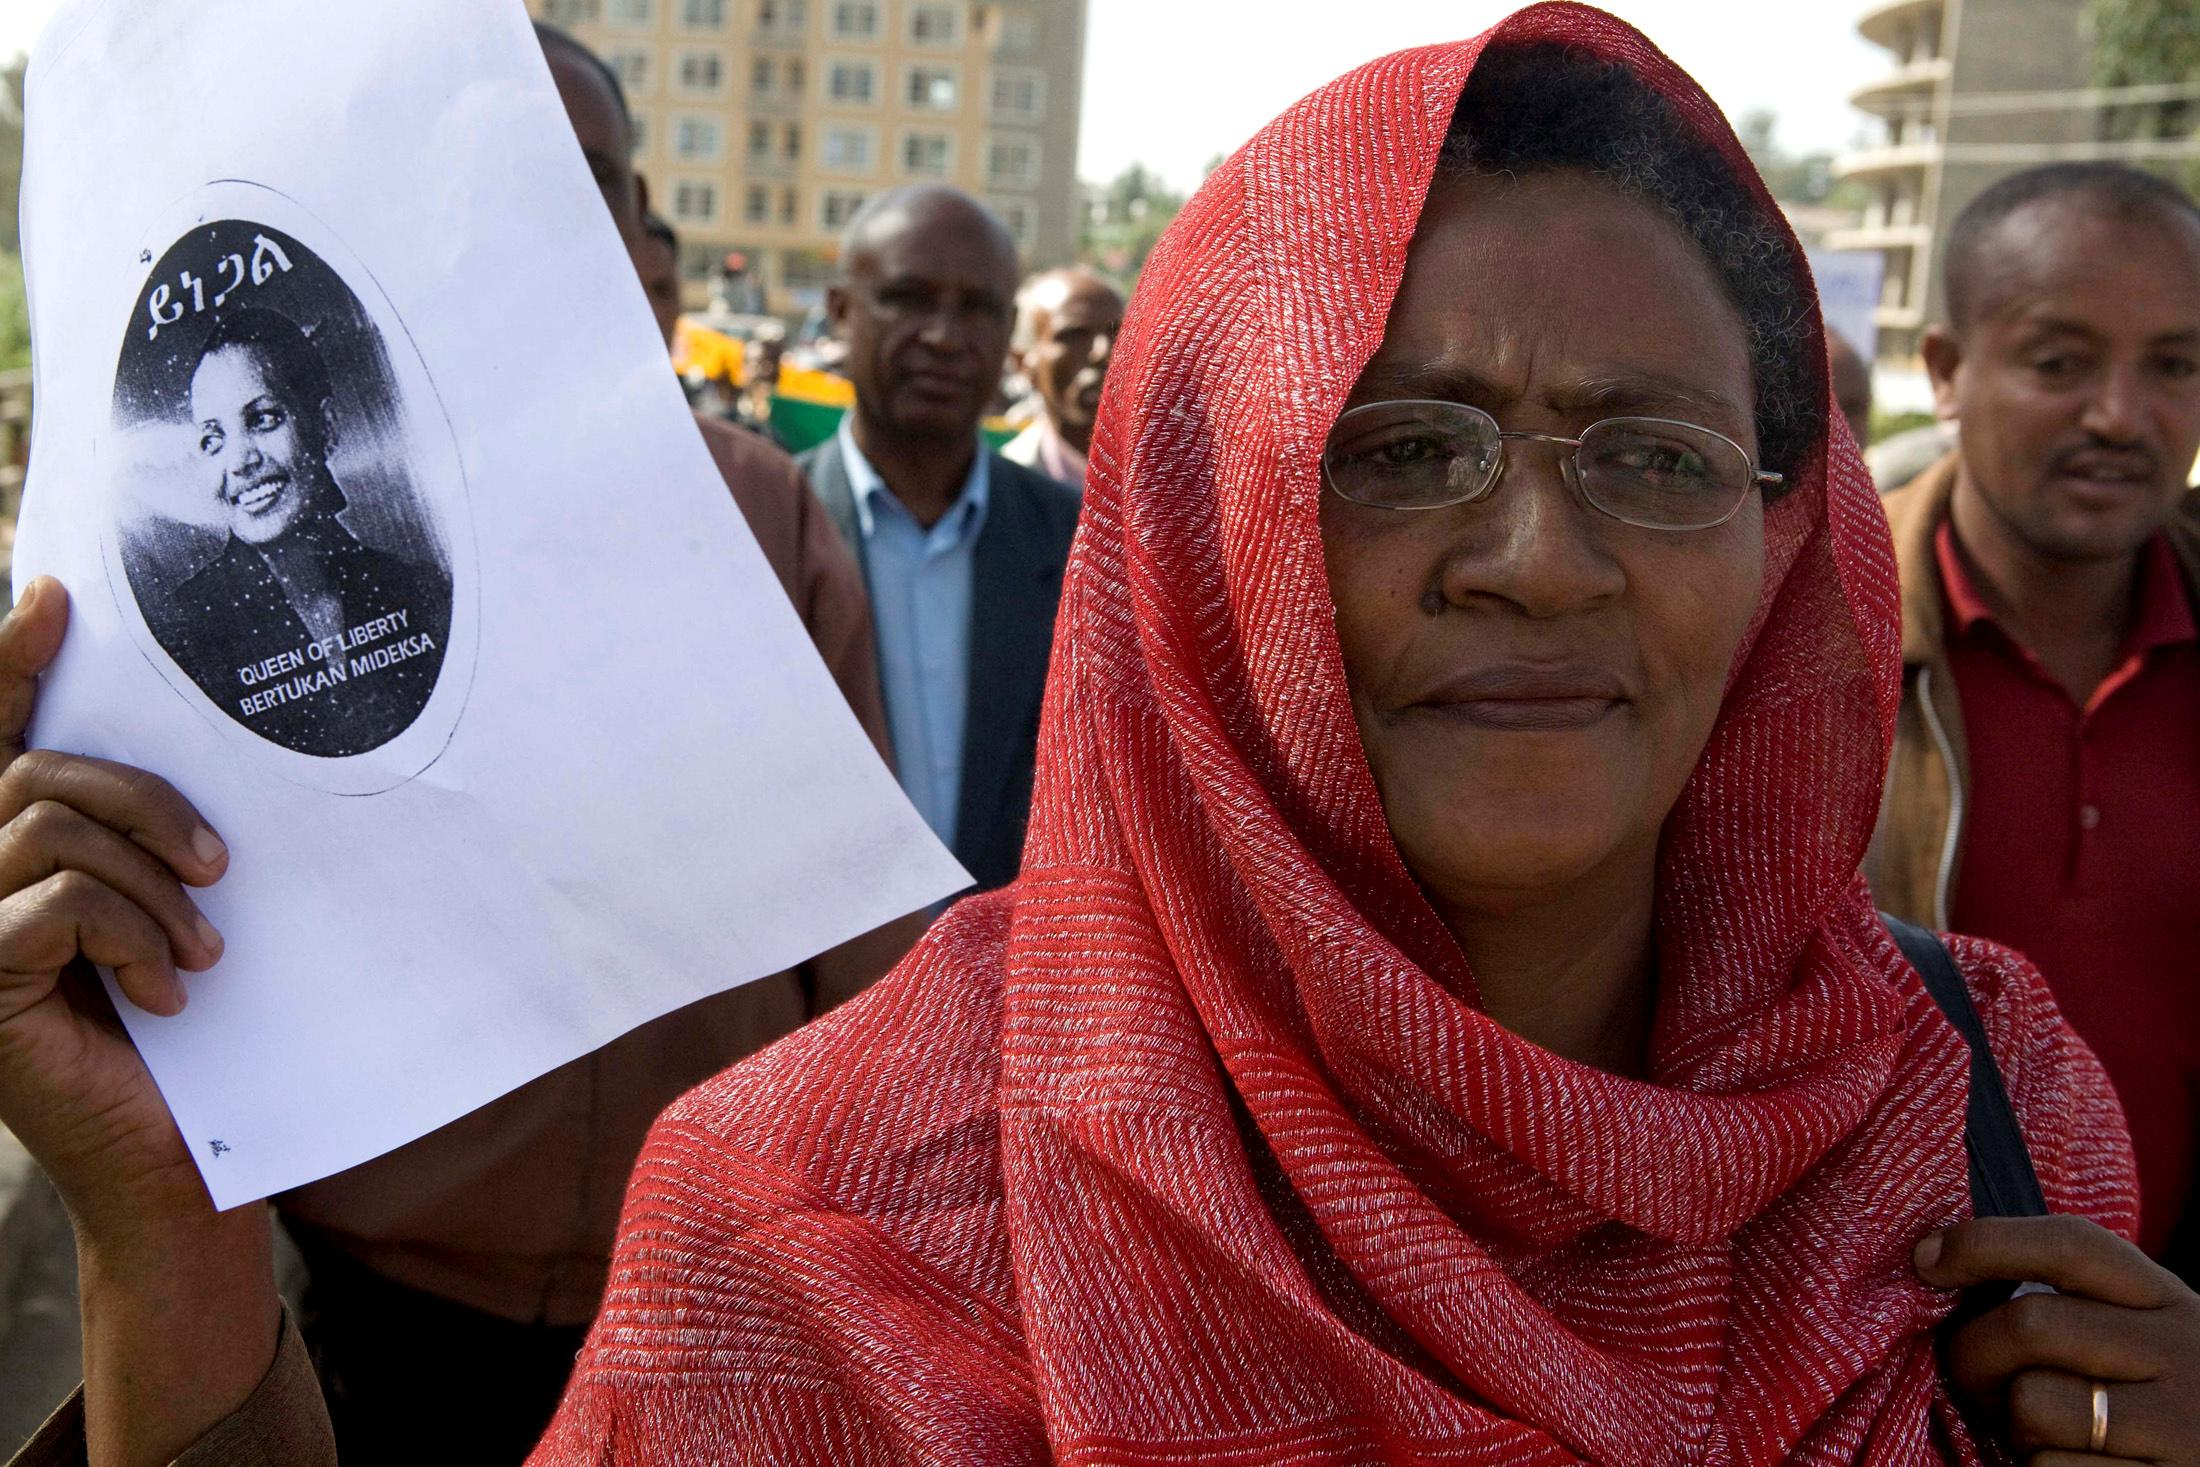 Ethiopia chooses dissident to head vote board as PM presses reforms